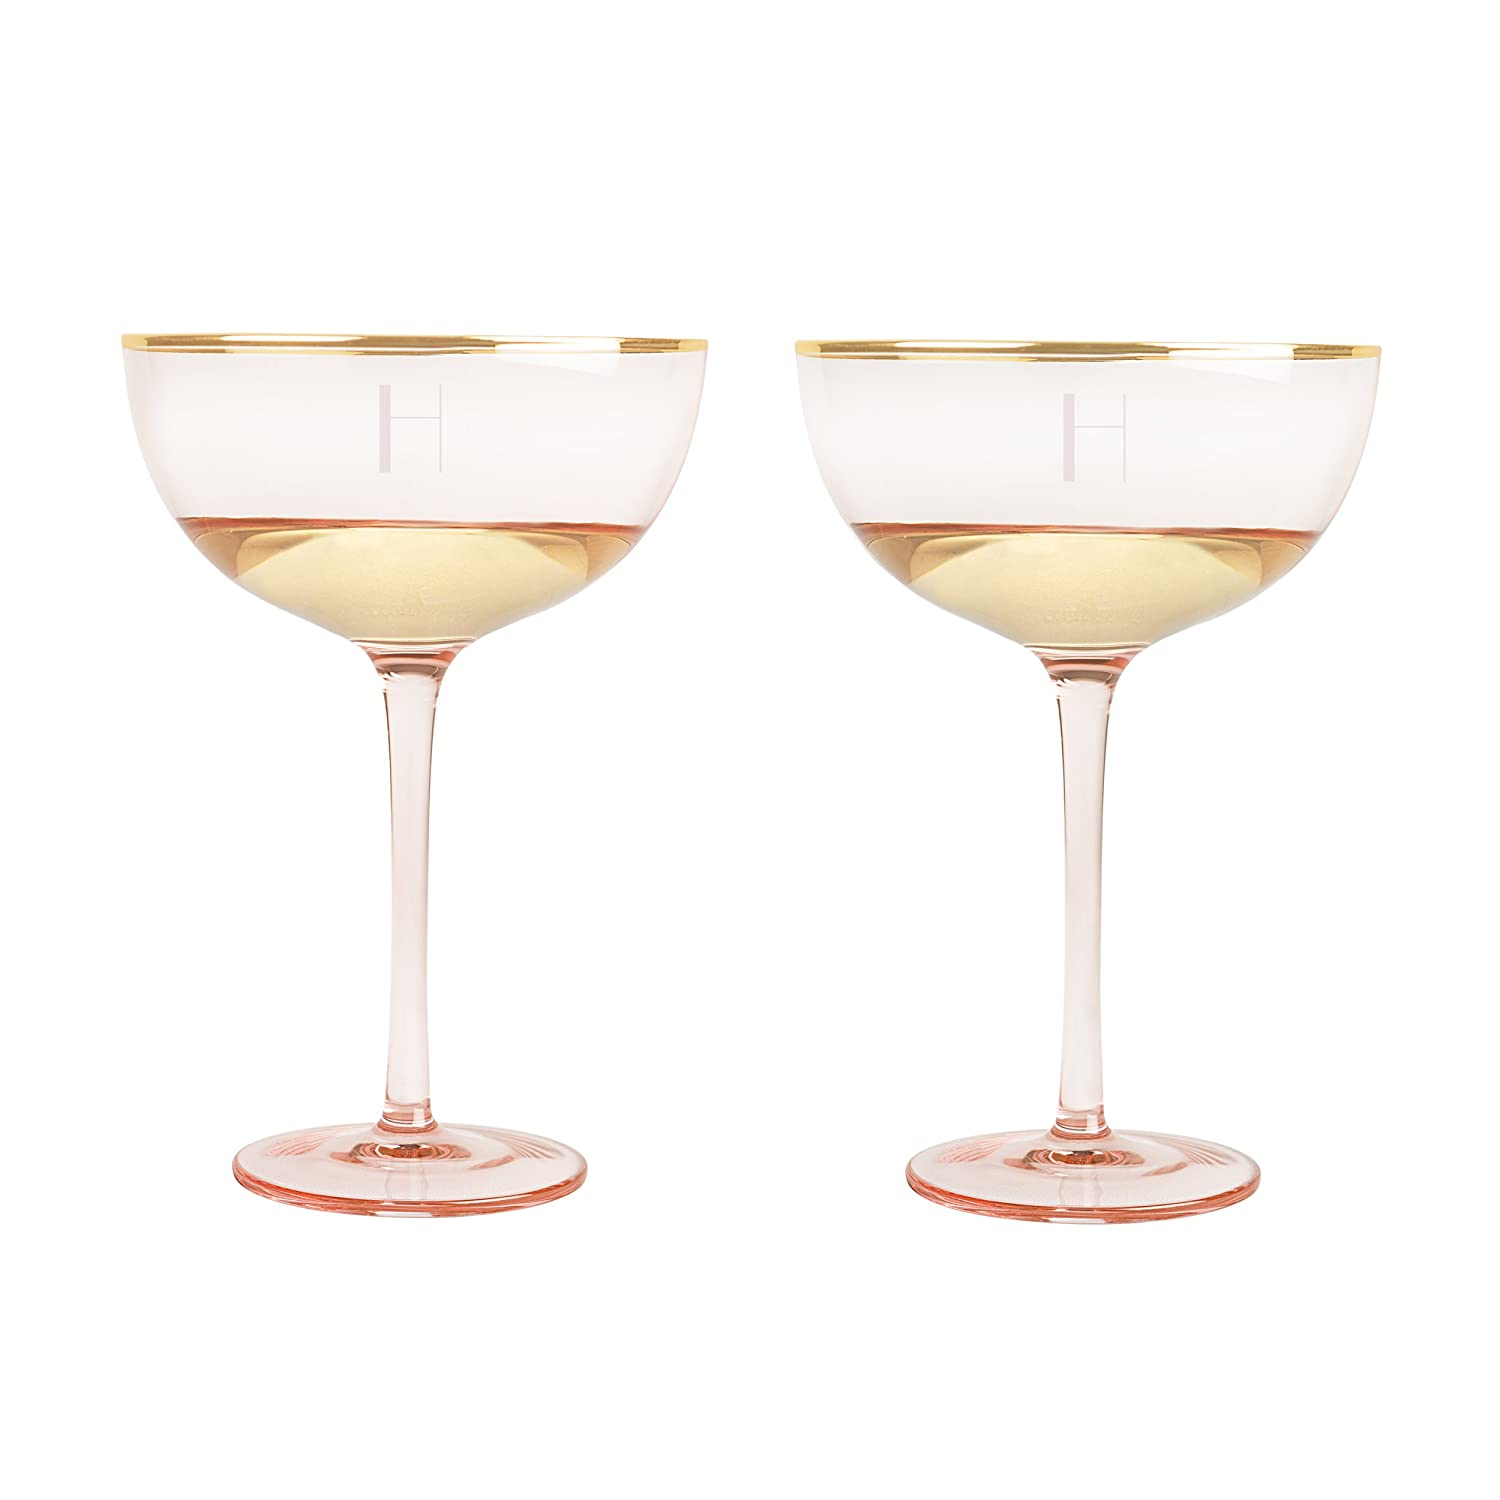 Cathy's Concepts 1240RS-A Personalized 8 oz Blush Rose Gilded Rim Coupe Flutes, A, Pink Cathy's Concepts